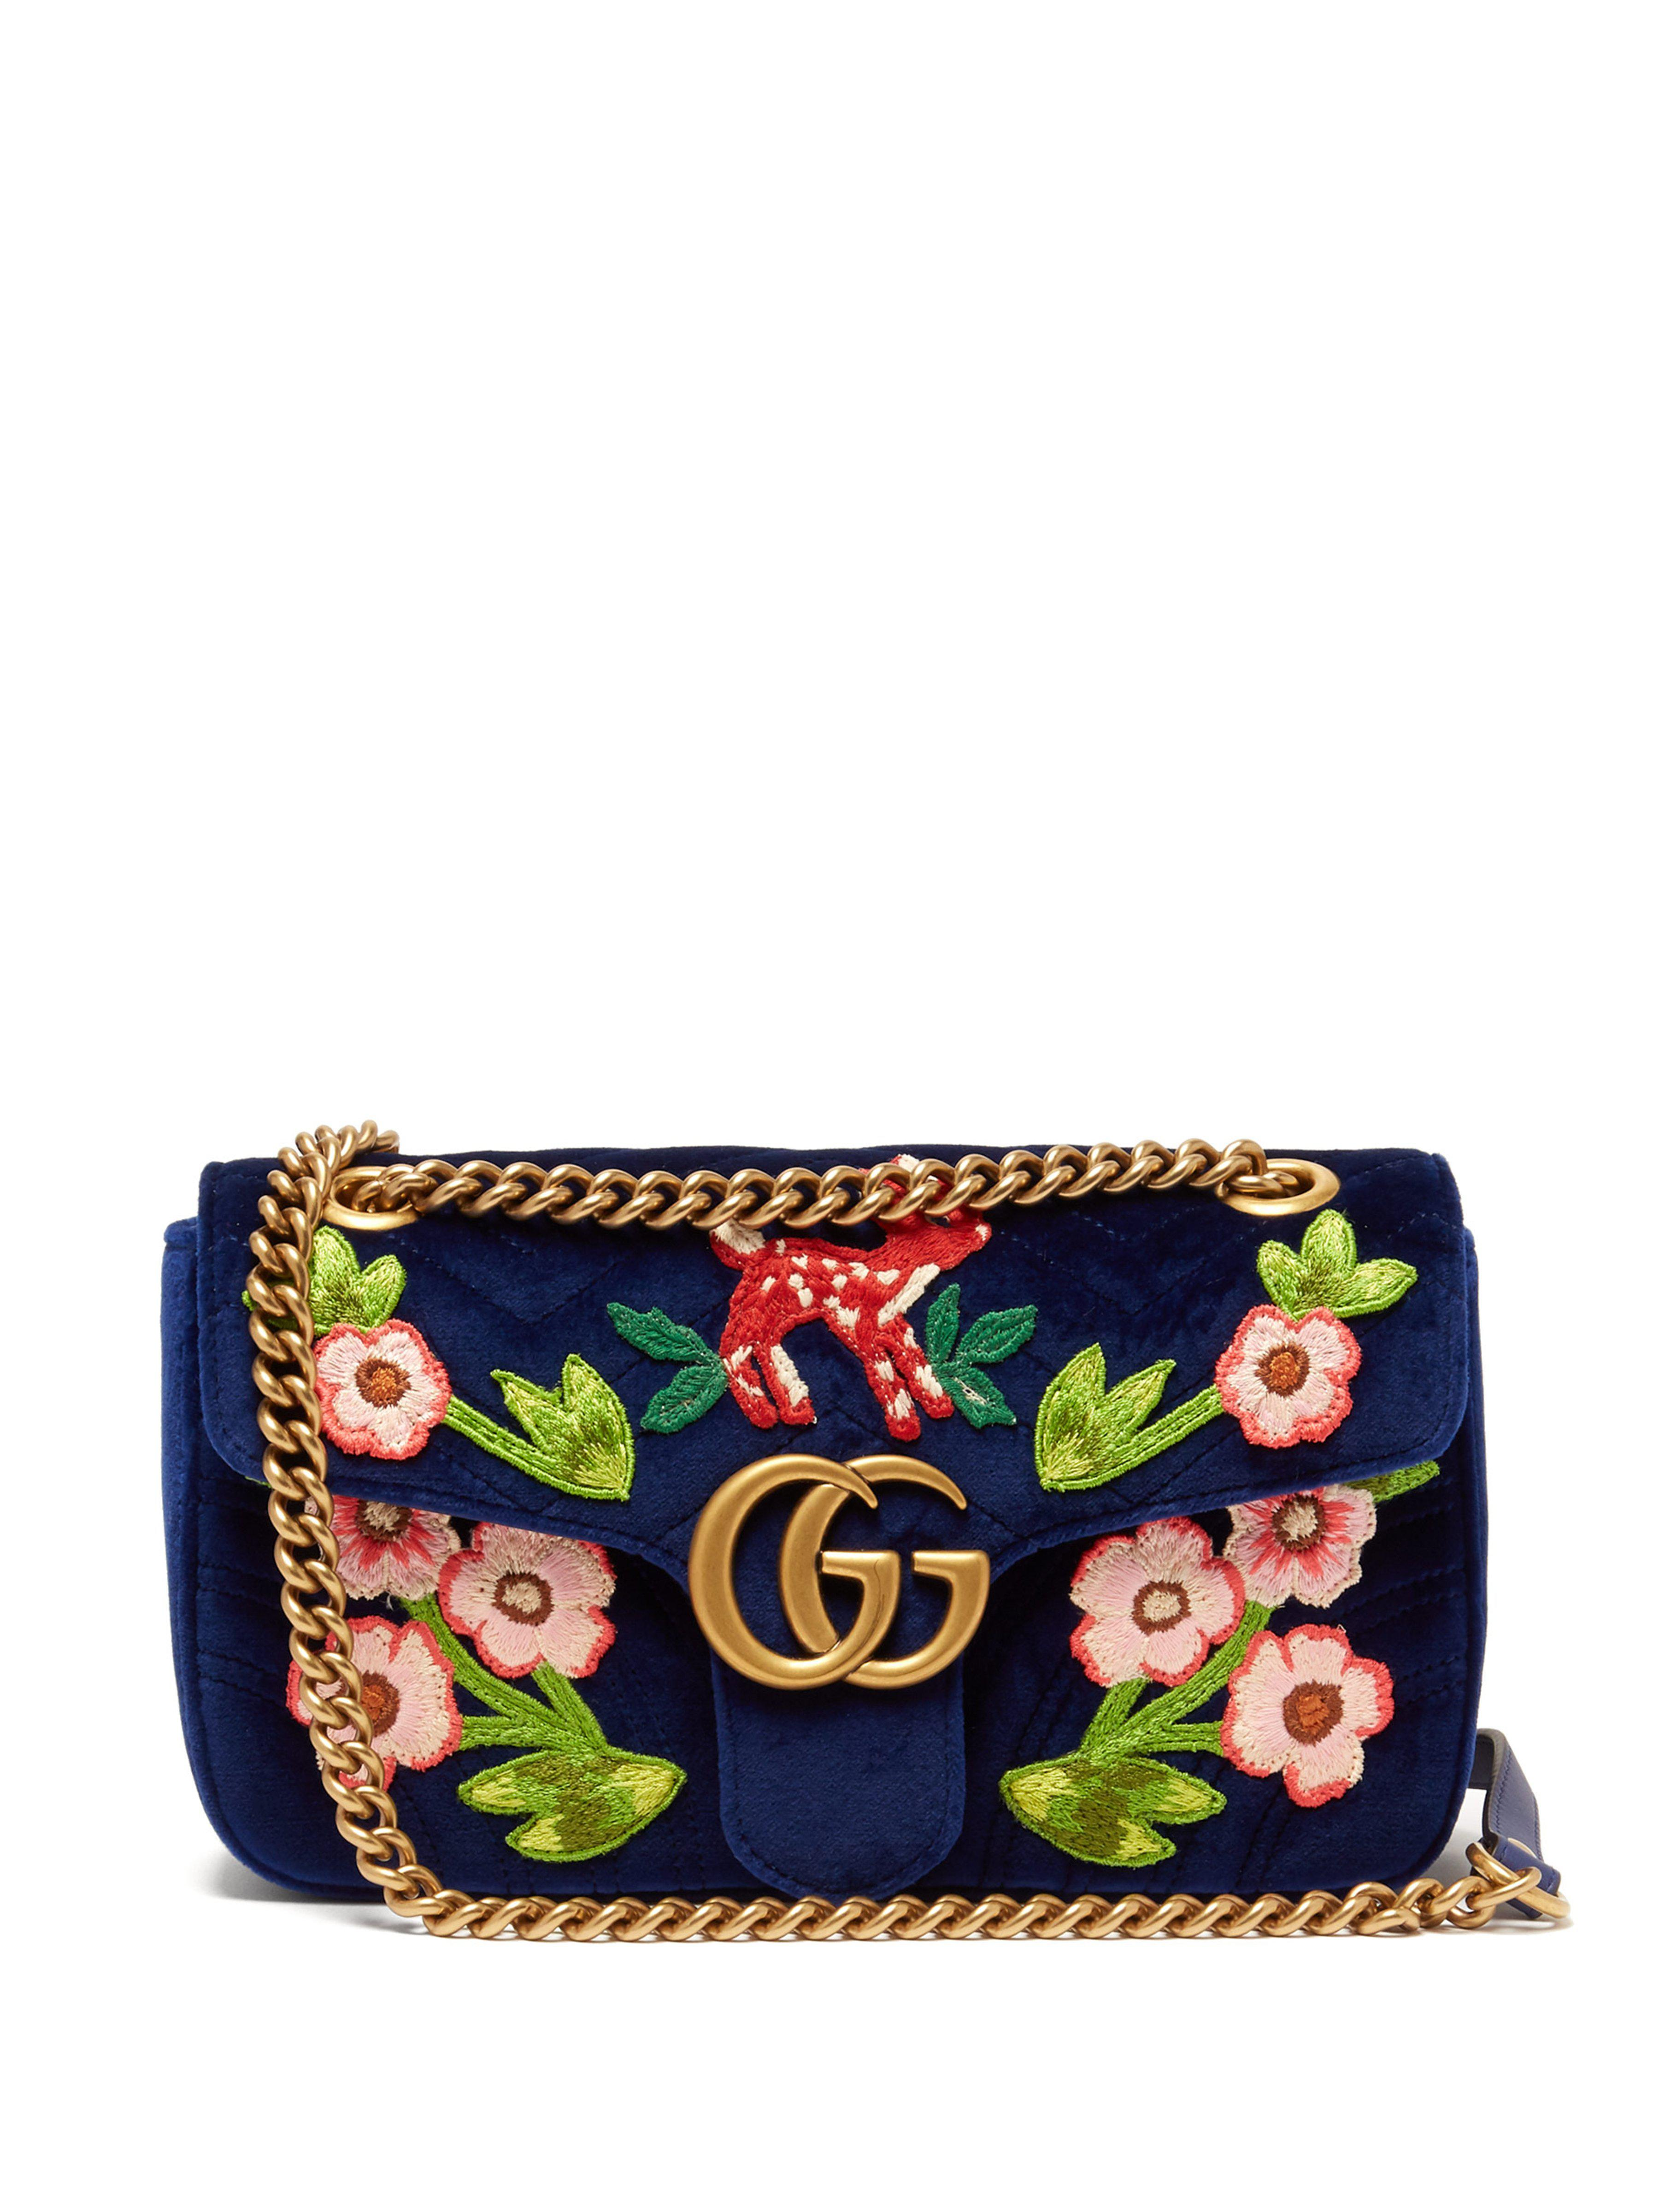 cb9a13e6cd04 Gucci Gg Marmont Embroidered Velvet Shoulder Bag in Blue - Lyst